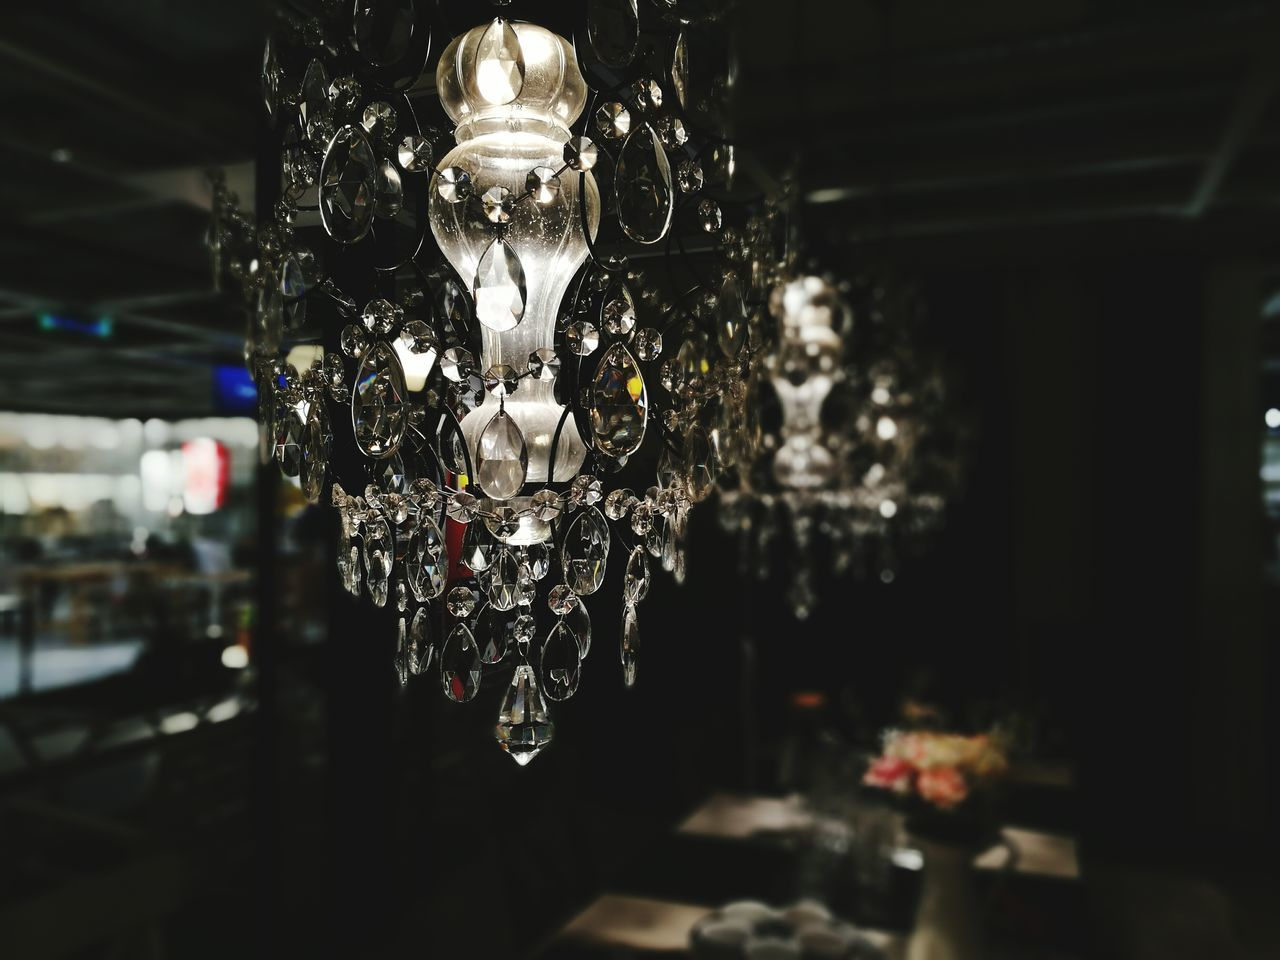 hanging, indoors, no people, focus on foreground, illuminated, store, close-up, luxury, crystal, day